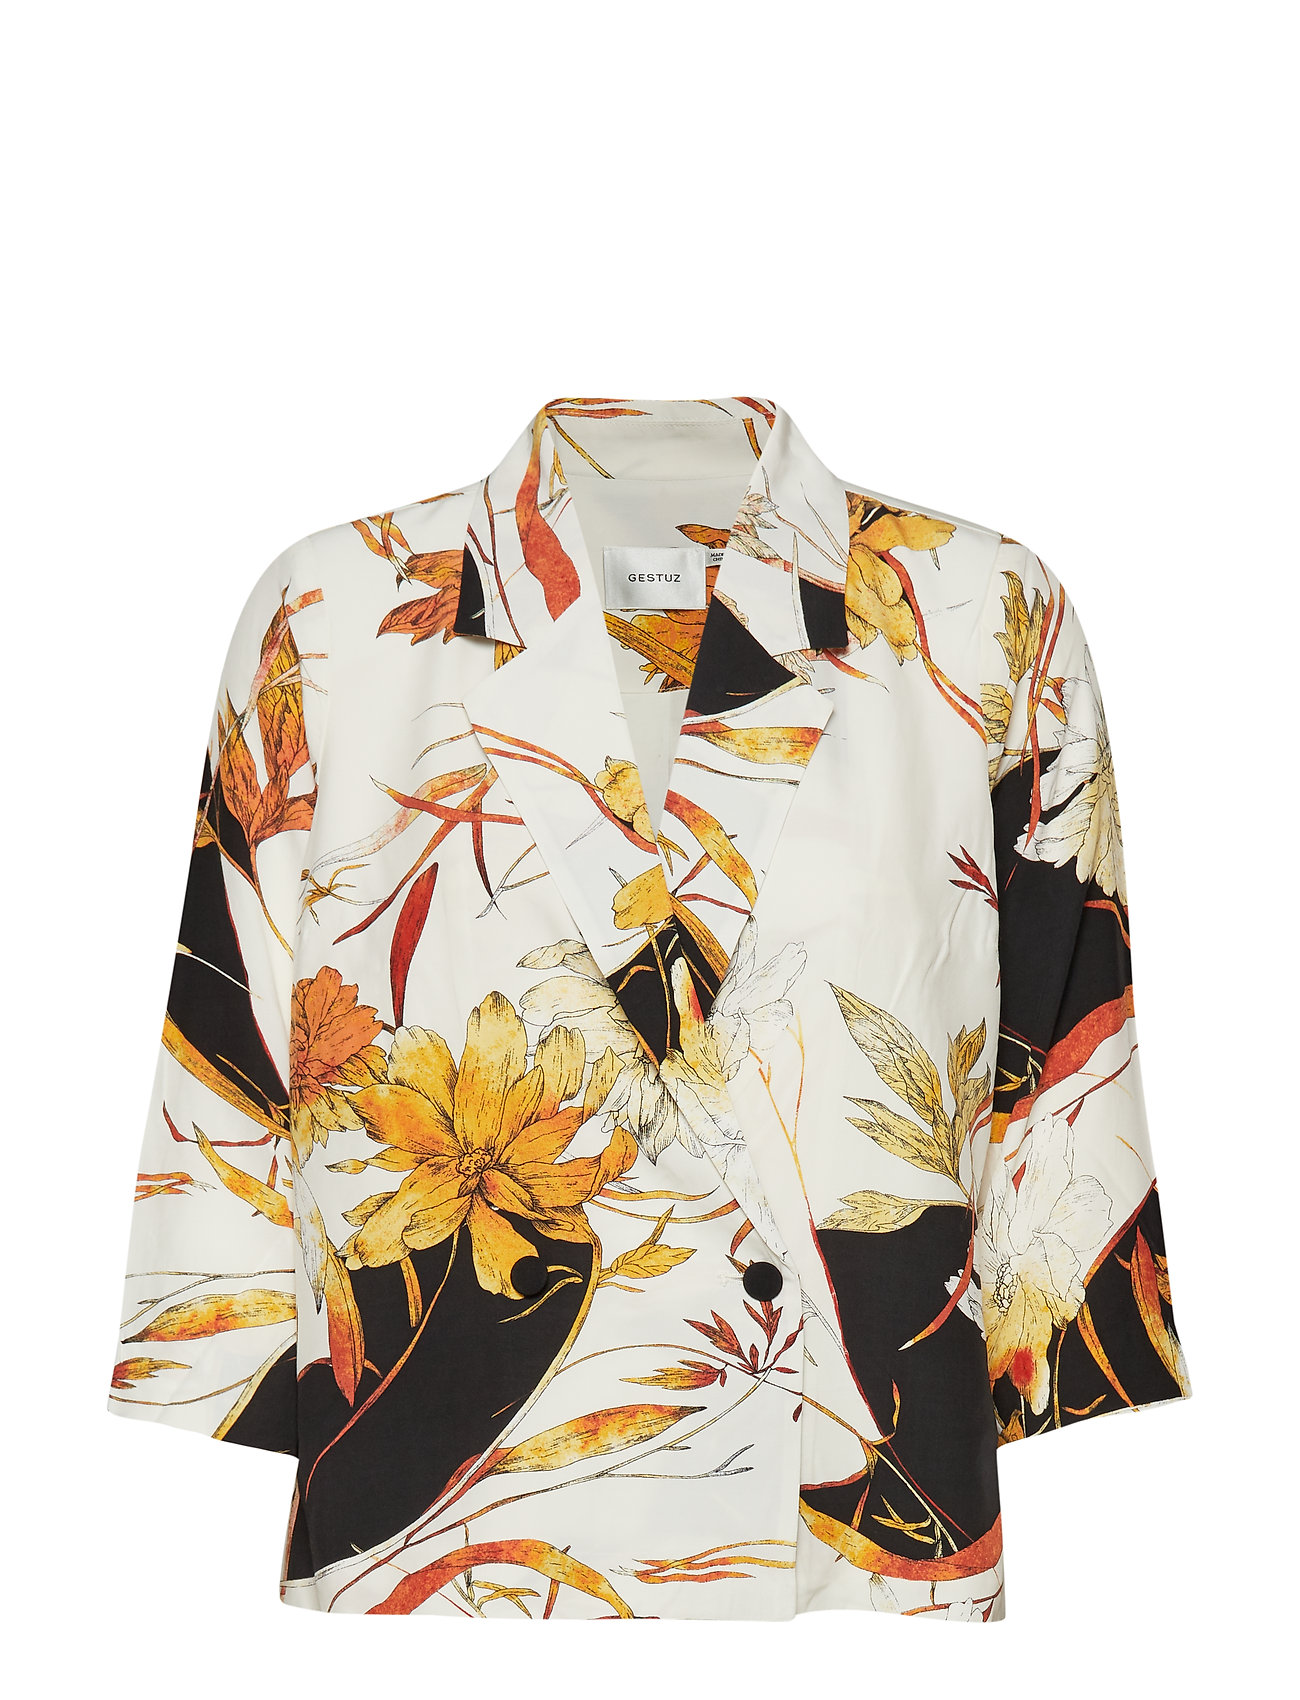 Gestuz AbelineGZ blazer HS19 - WHITE/ORANGE FLOWER